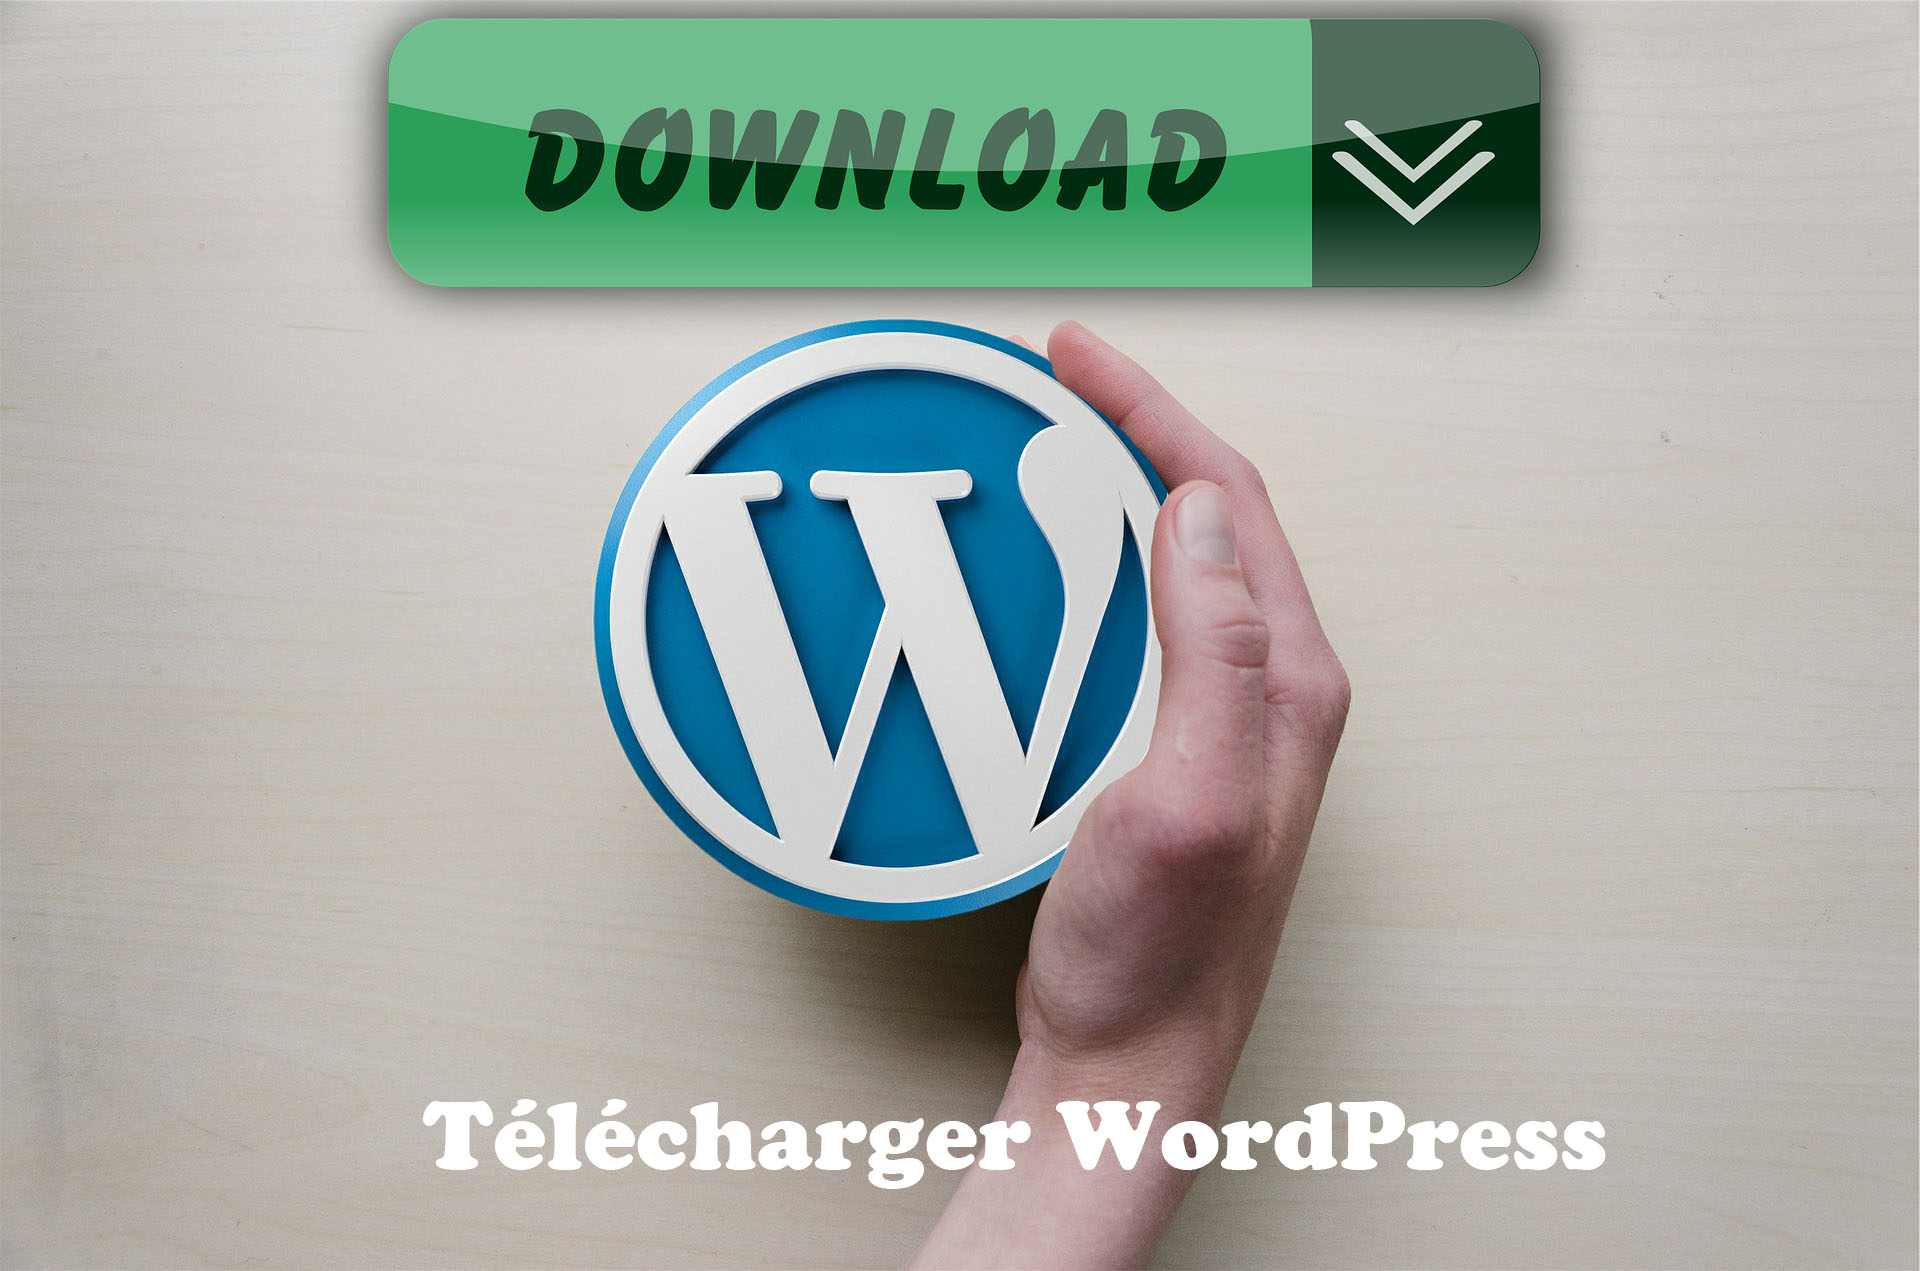 Comment telecharger wordpress ?